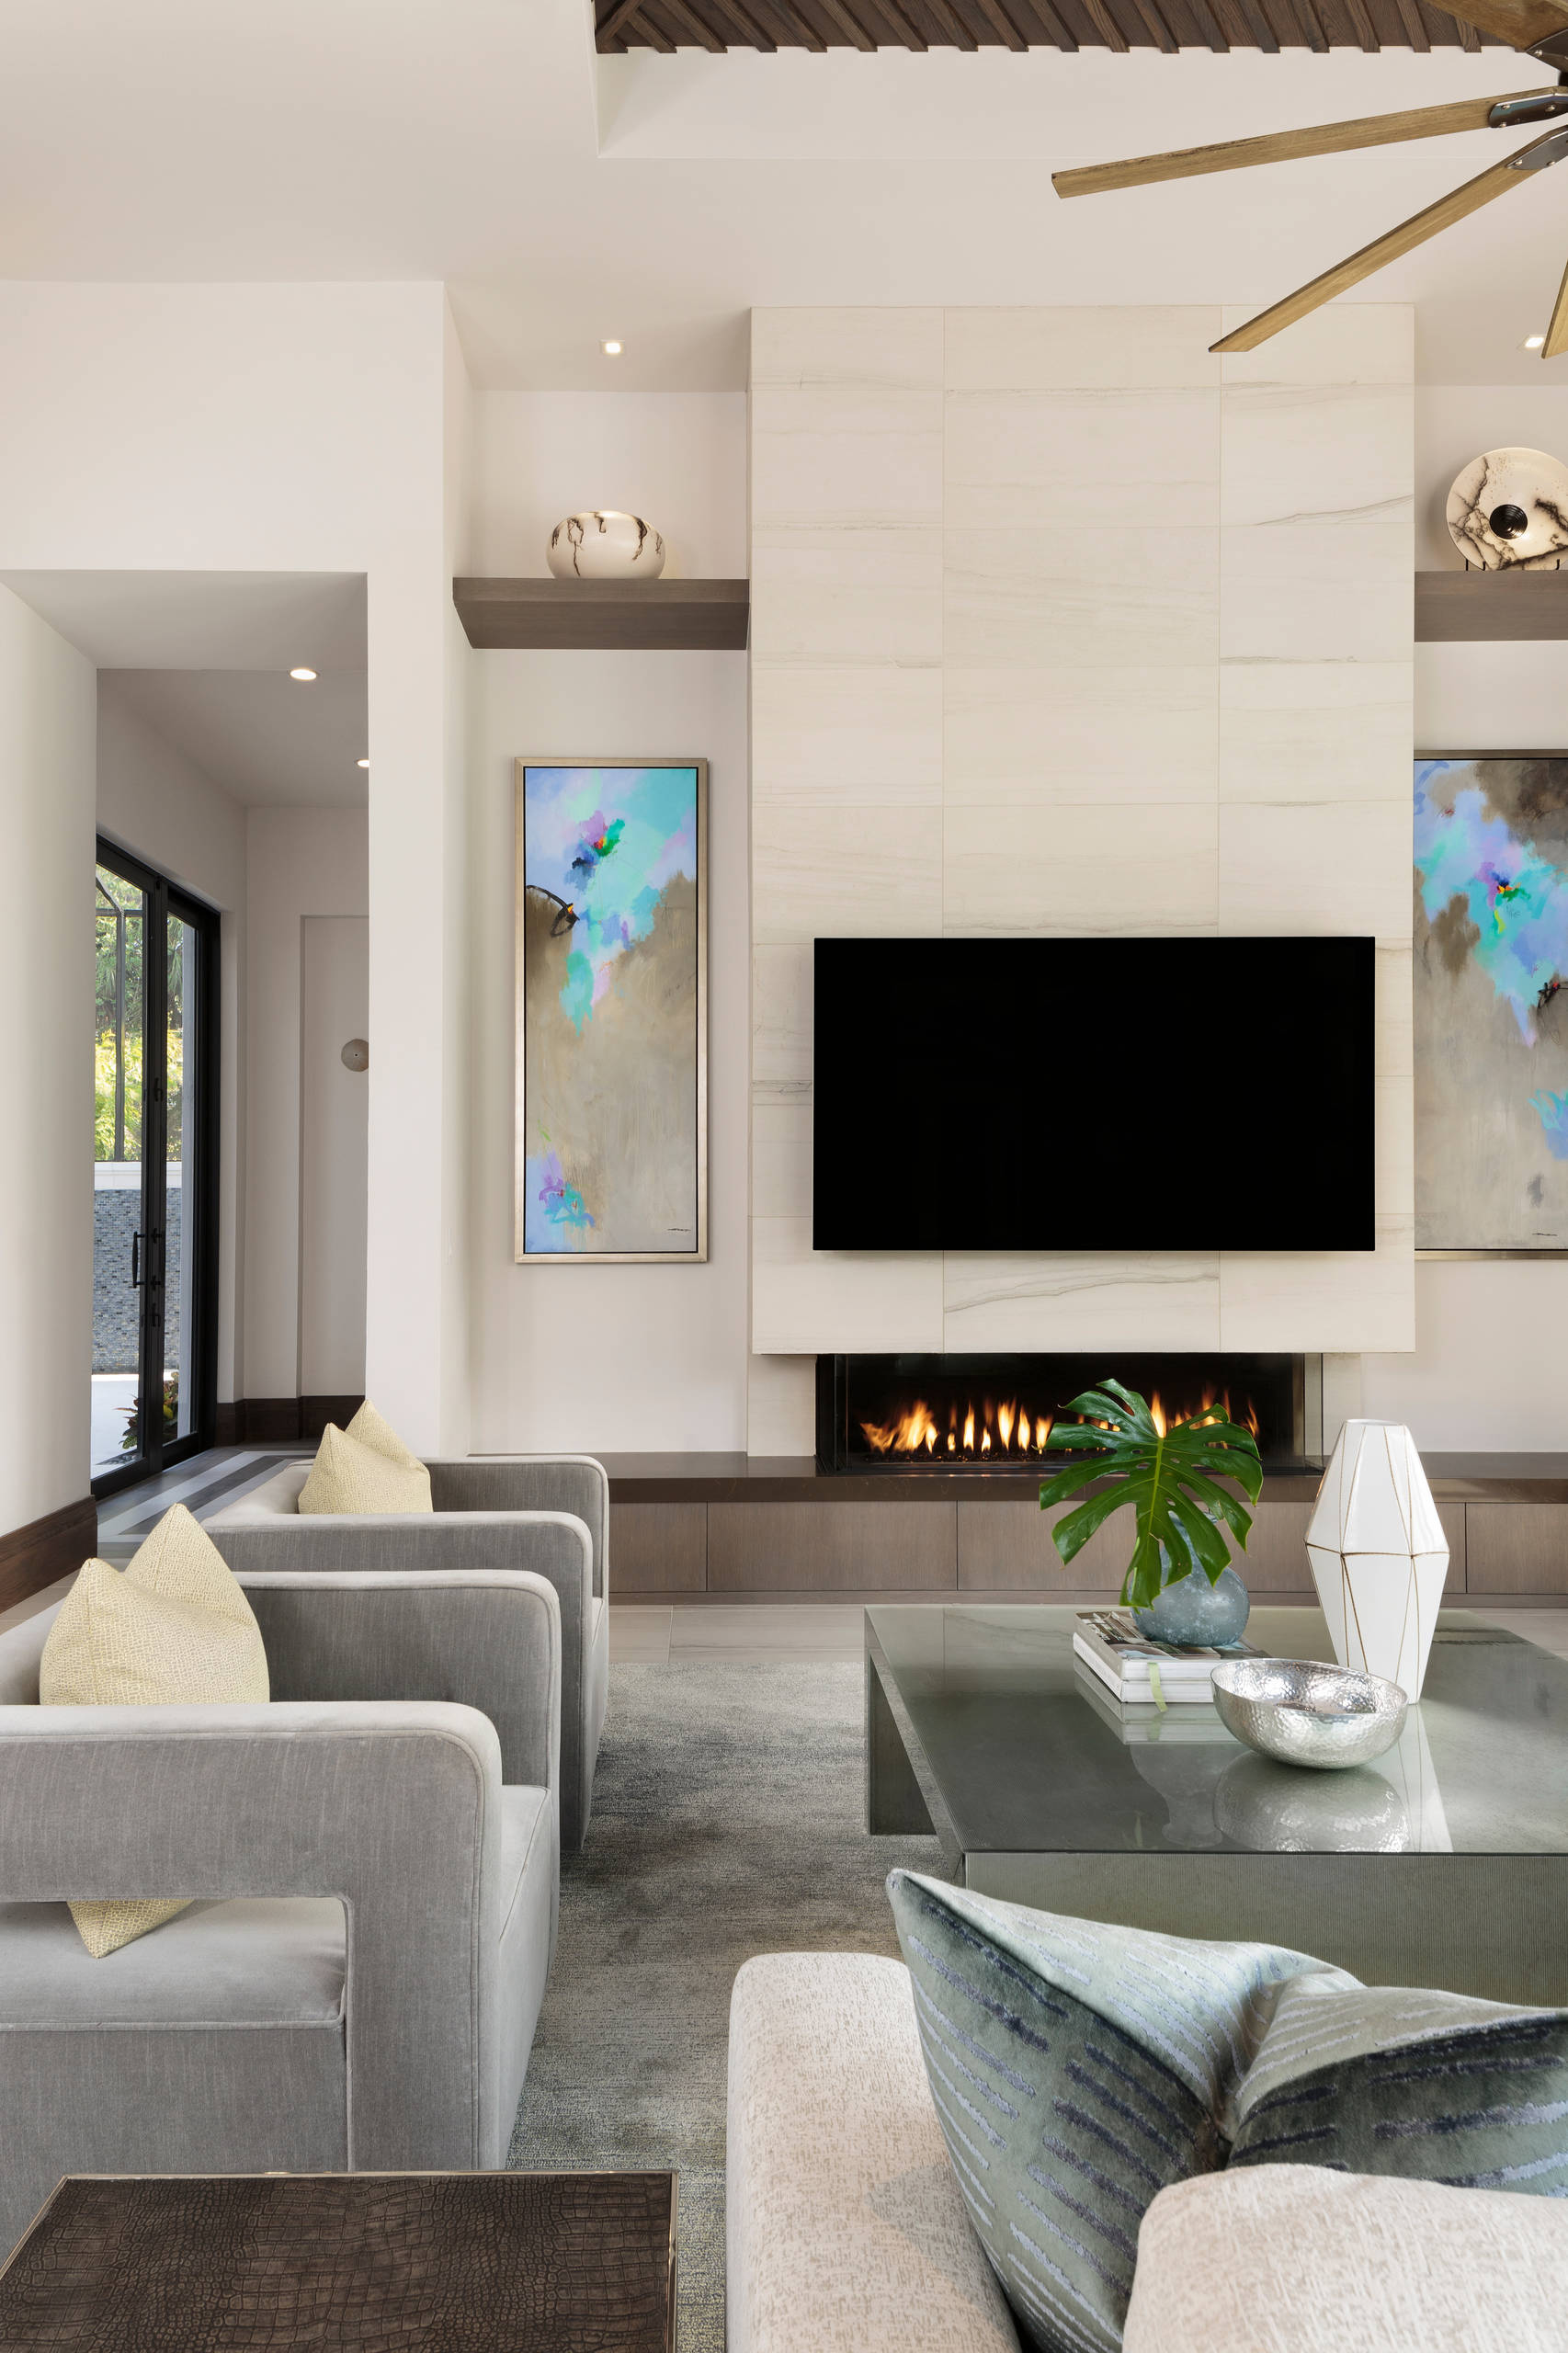 75 Beautiful Modern Living Room Pictures Ideas September 2020 Houzz